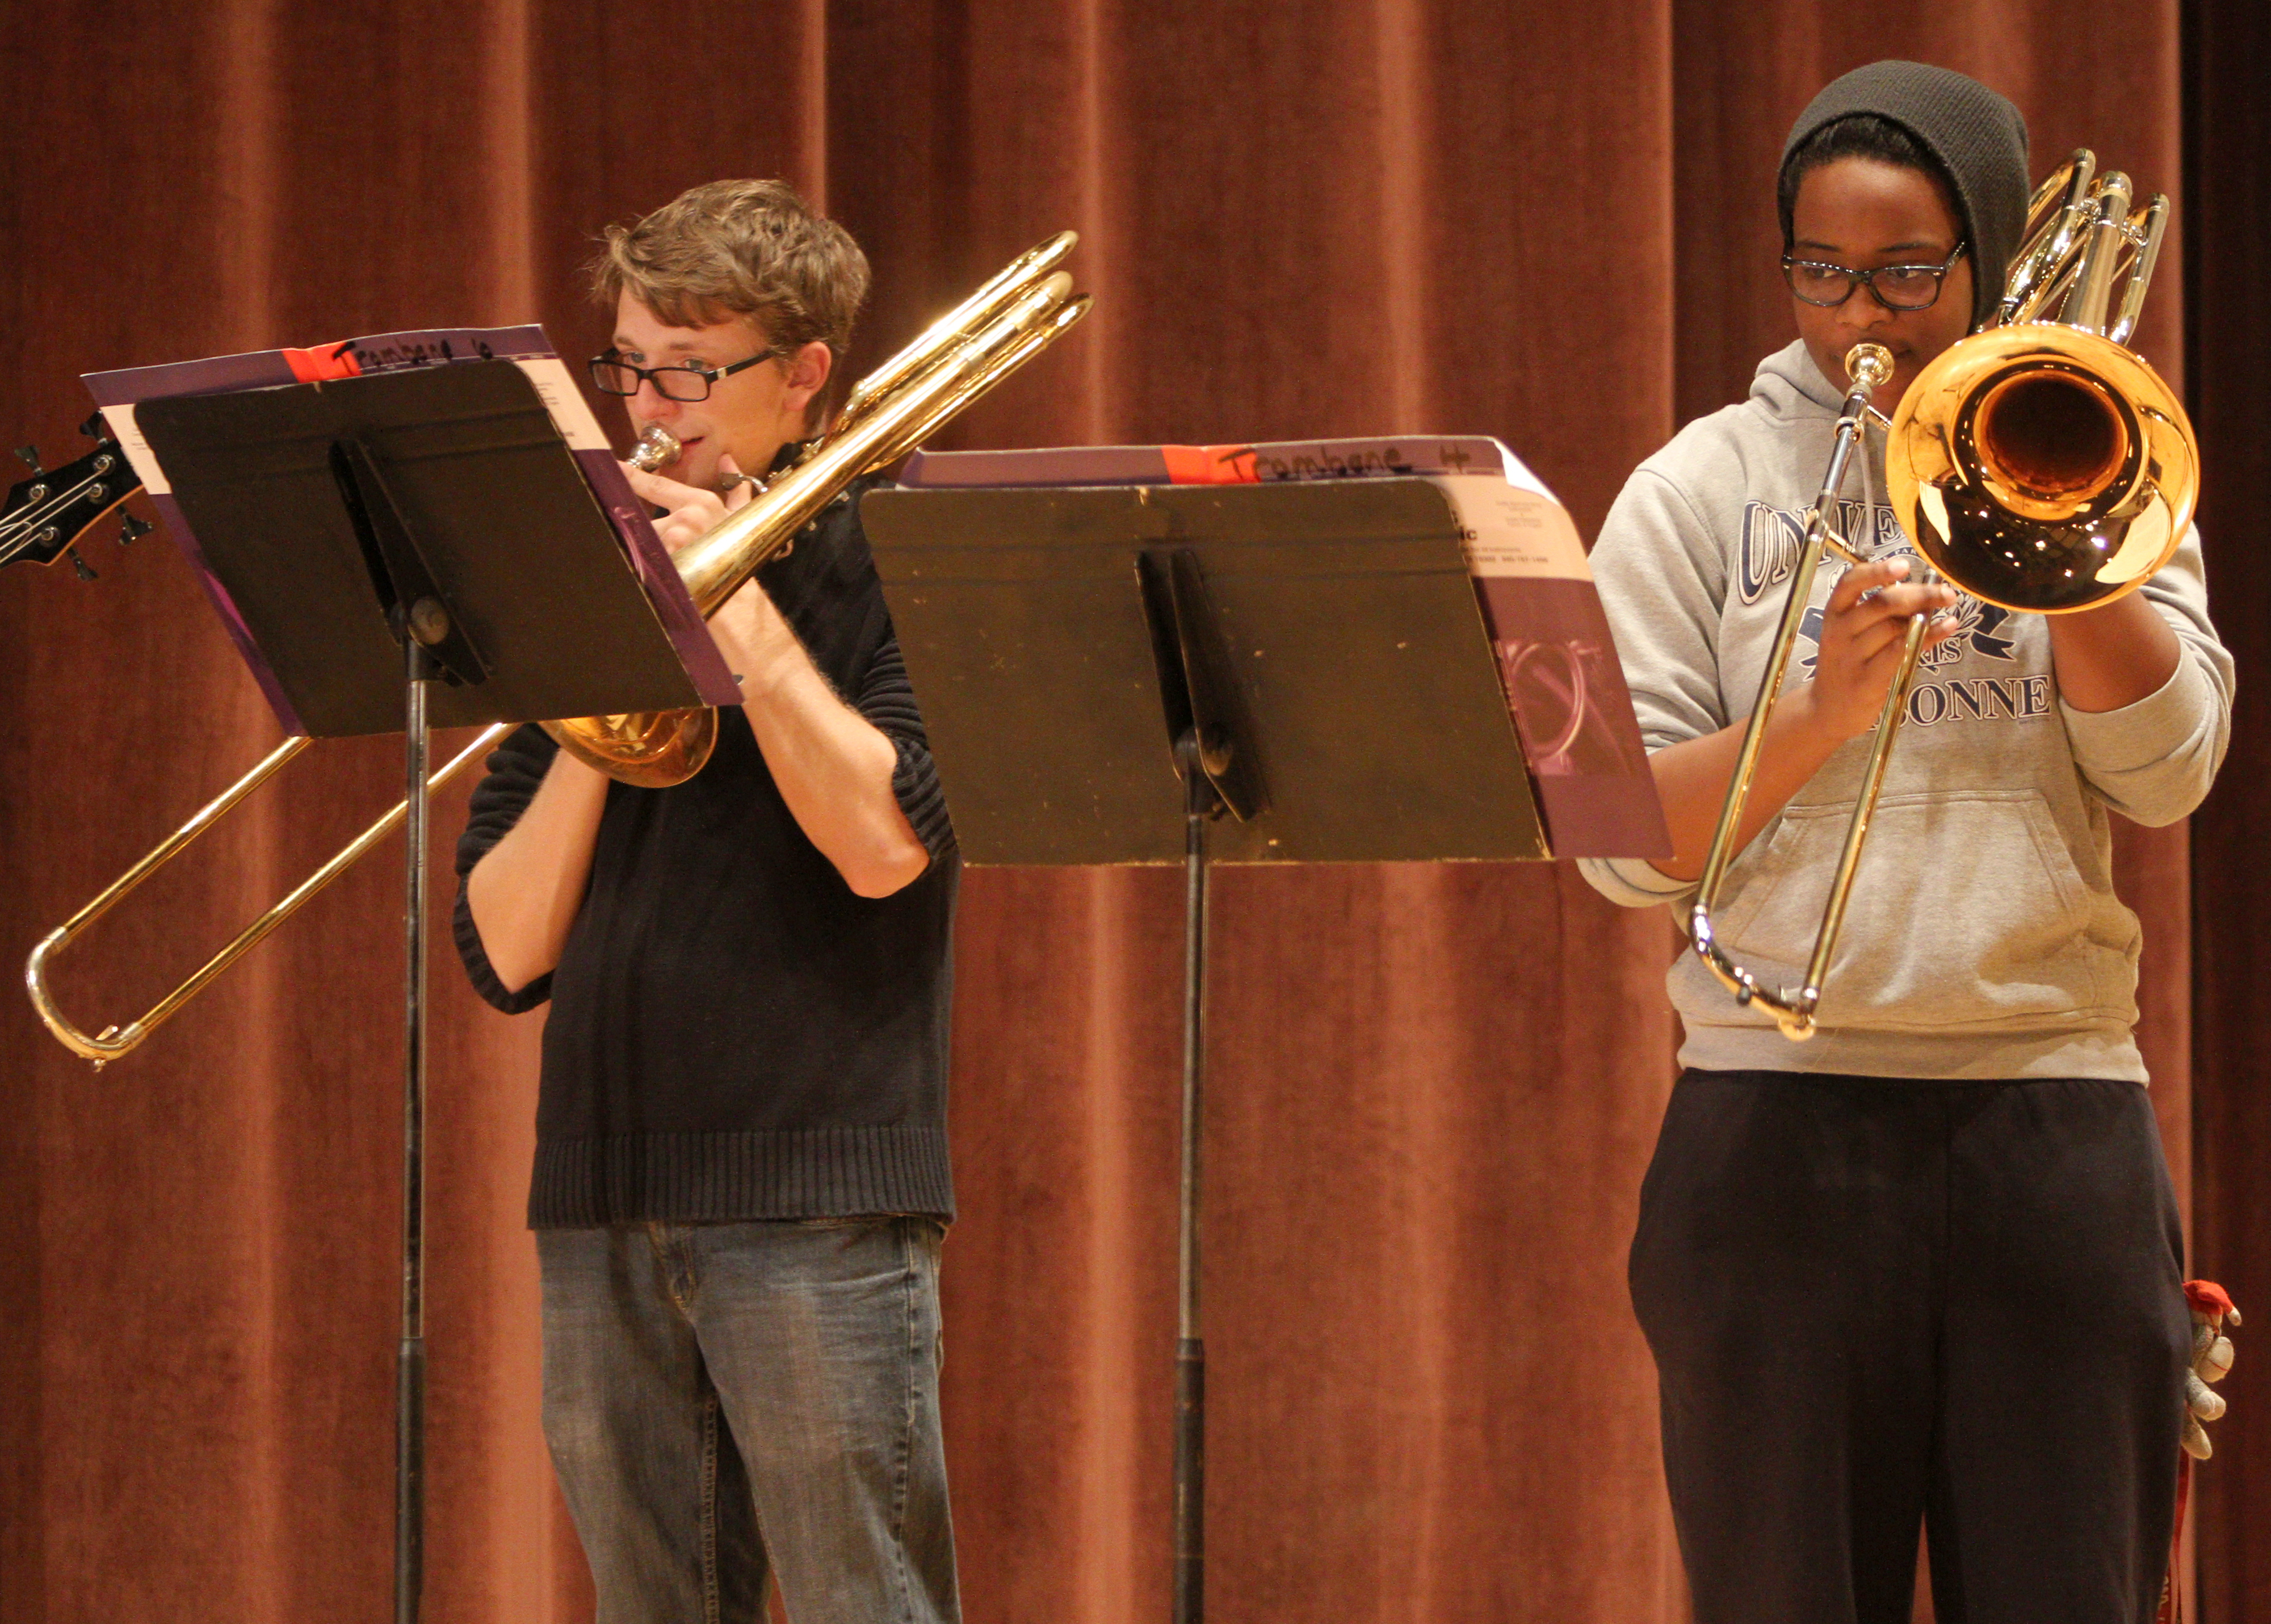 'Bone Yard' trombones perform tonight